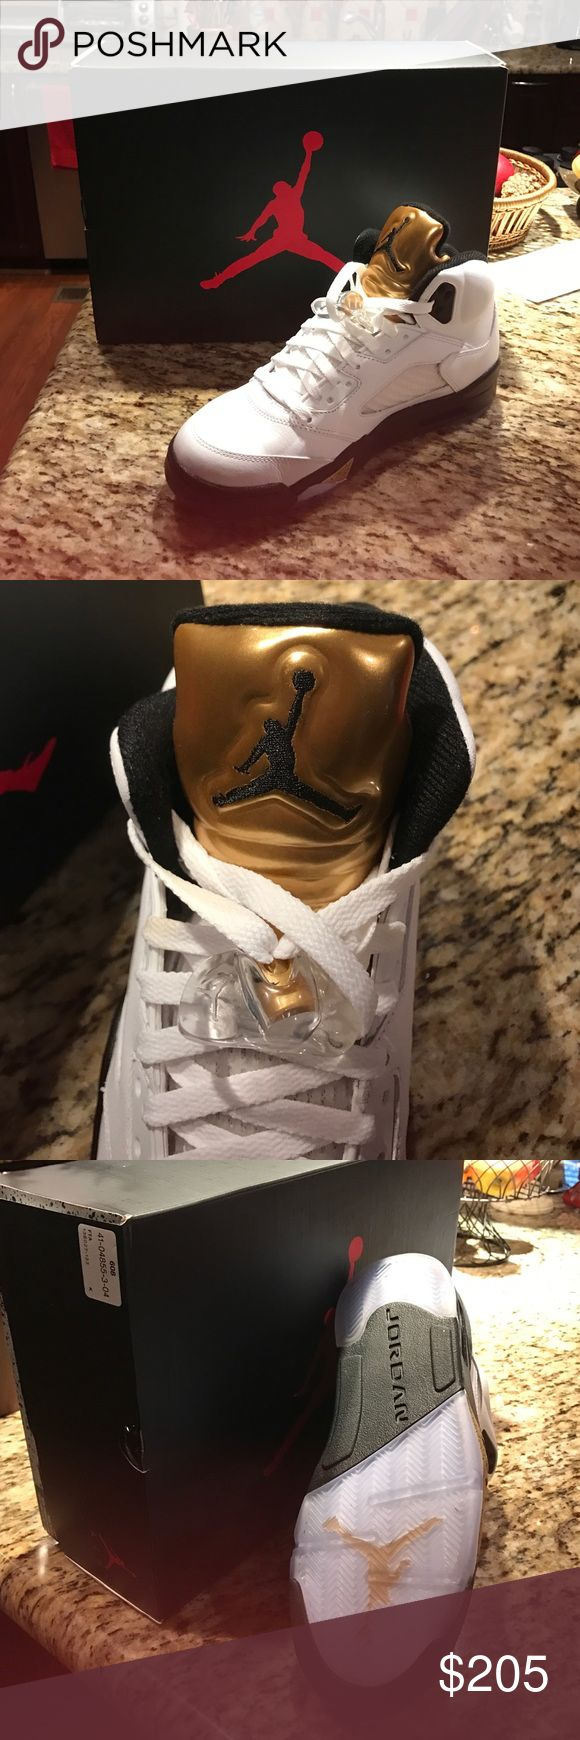 Jordan Retro 5 Olympic Gold Sneakers Brand New In Box, Never Worn...we bought for our son and they were too tight. They are size 8.5. Purchased in October 2016, in box and tissue since. I have original receipt from Finish Line. Hard to find. Jordan Shoes Sneakers